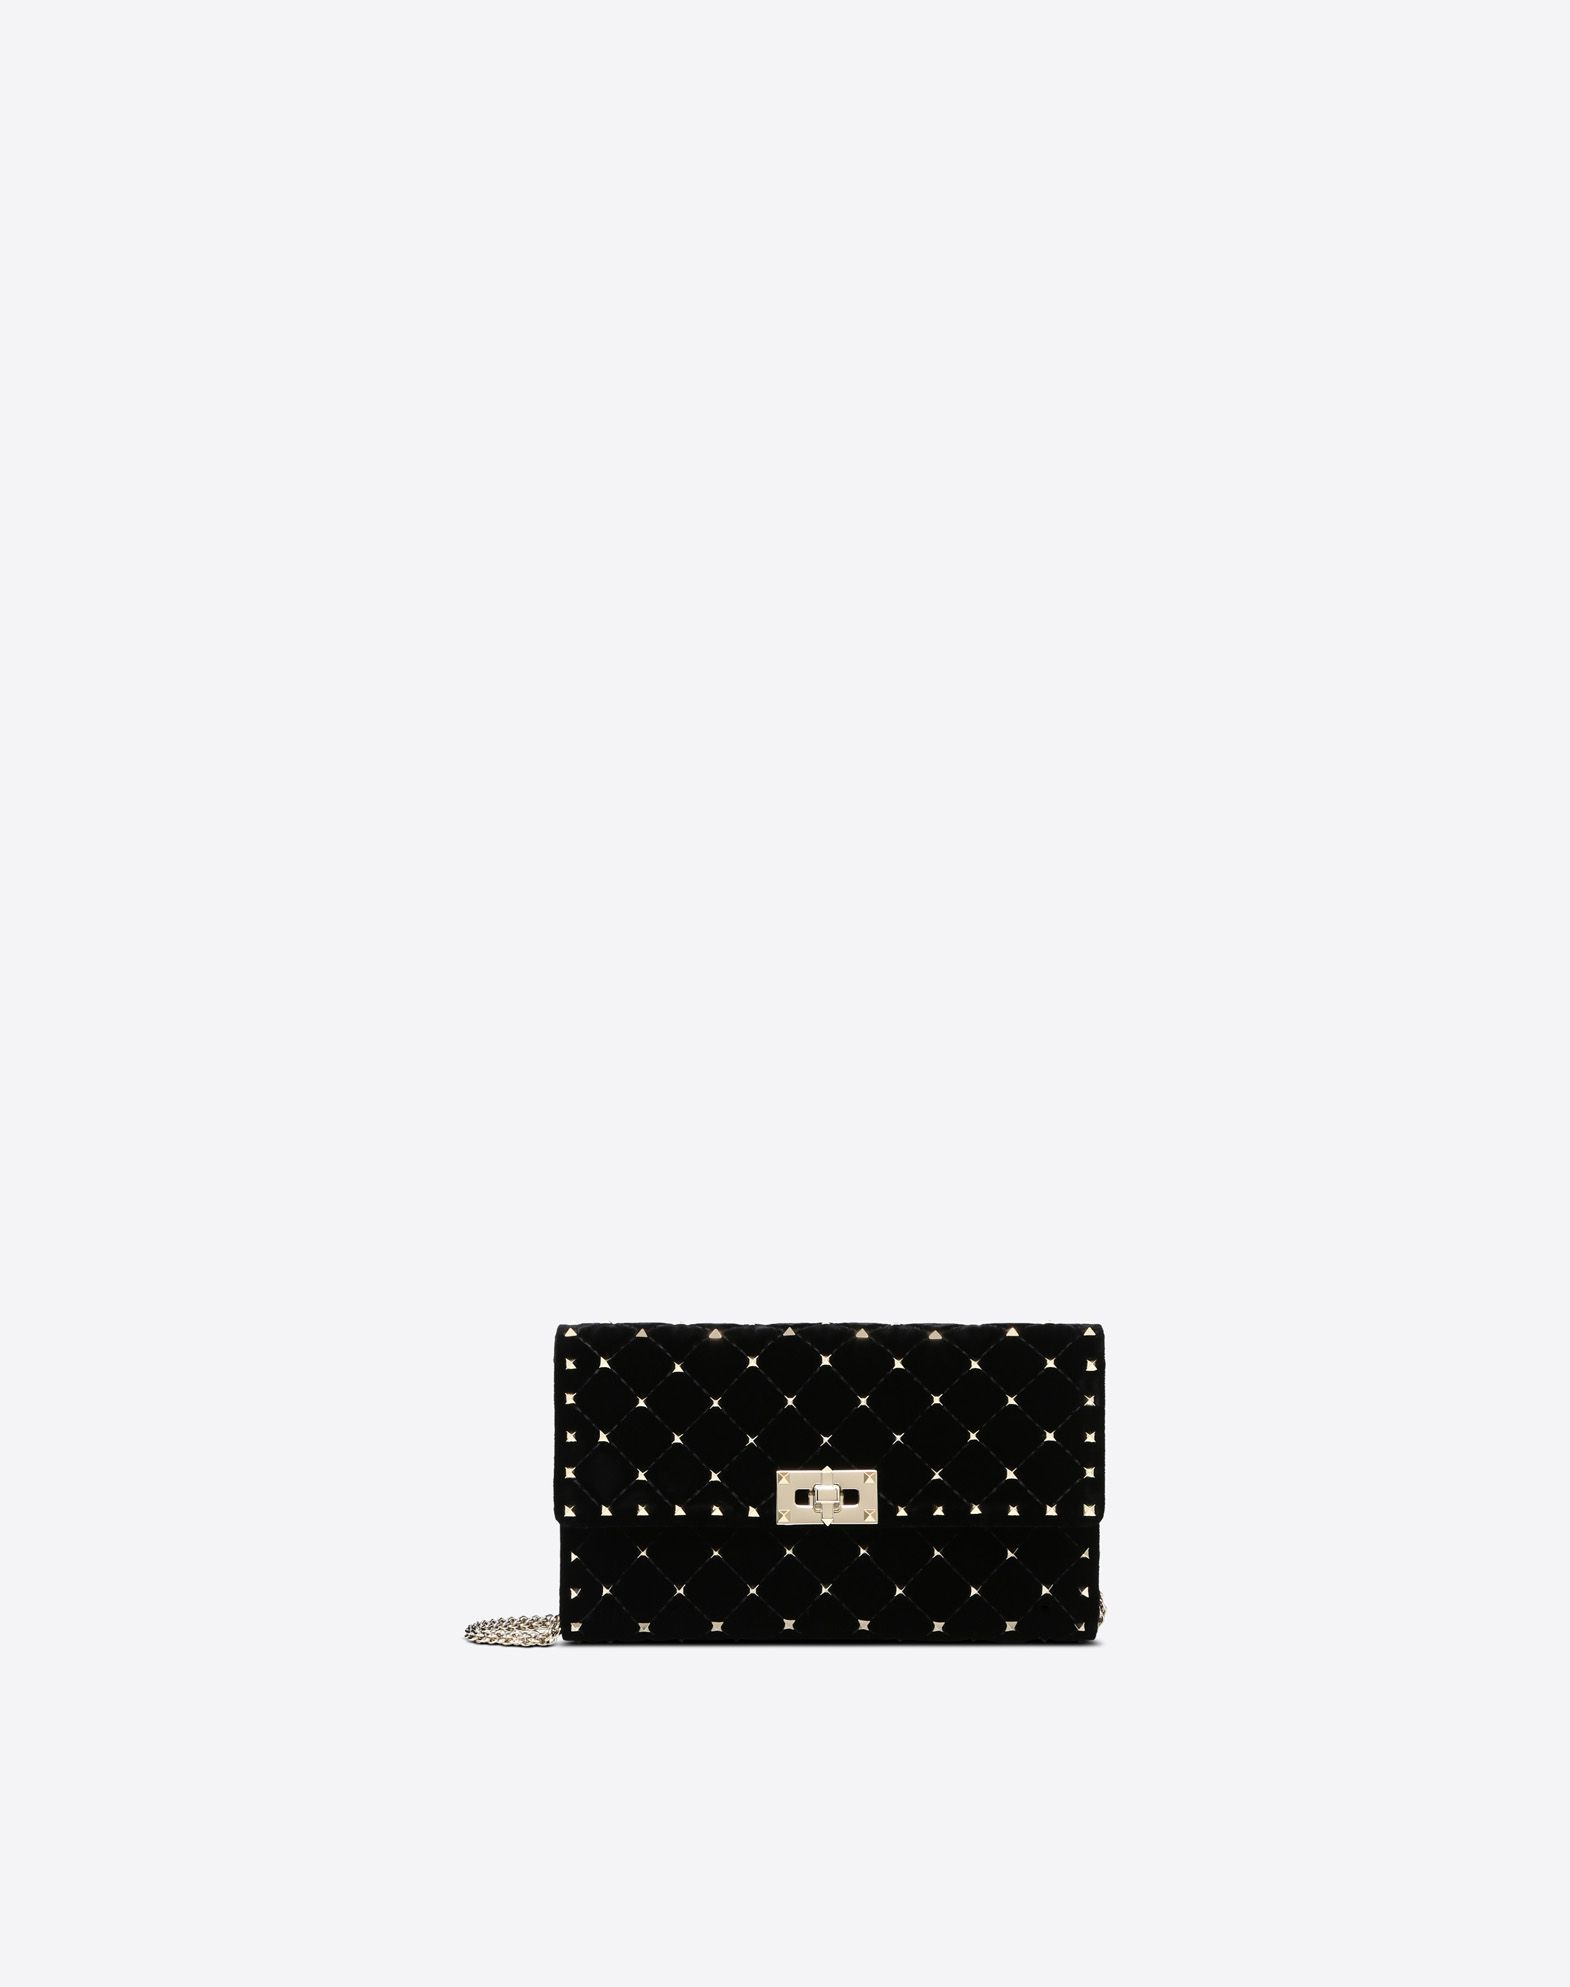 VALENTINO GARAVANI Rockstud Spike Chain Bag CROSS BODY BAG D f